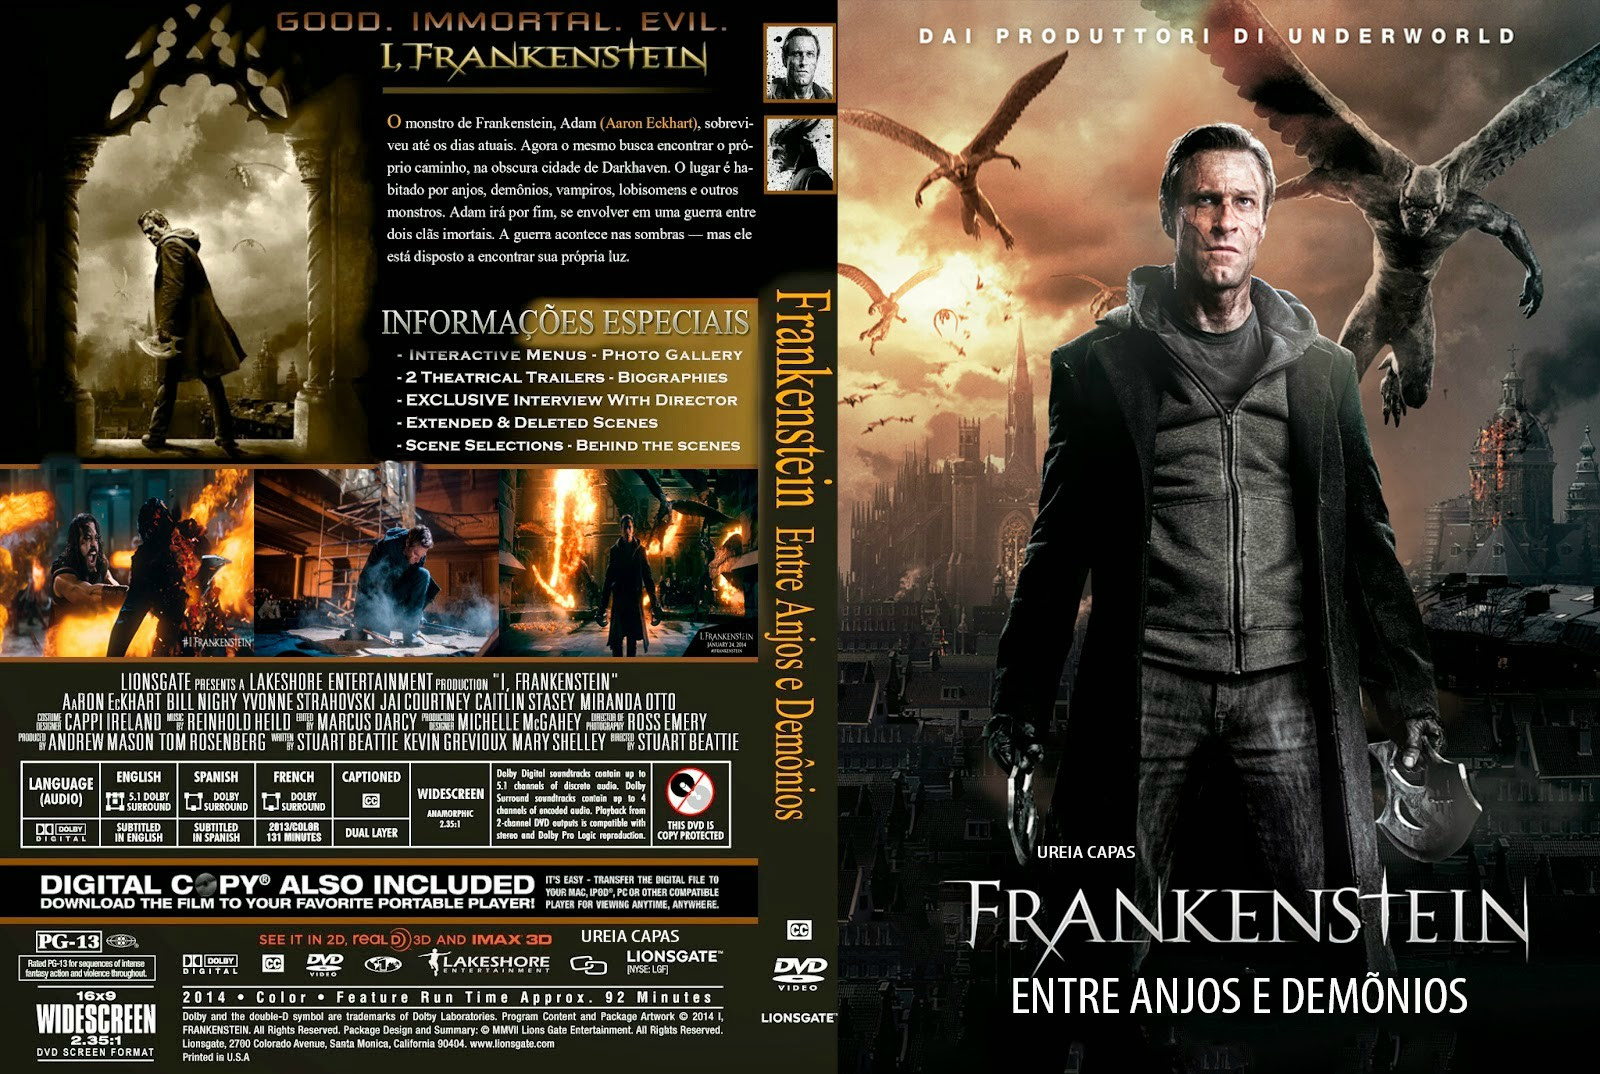 0zWWoYQ Frankenstein   Entre Anjos E Demônios (I, Frankenstein) Torrent   BluRay Rip 1080p Legendado 5.1 (2014)